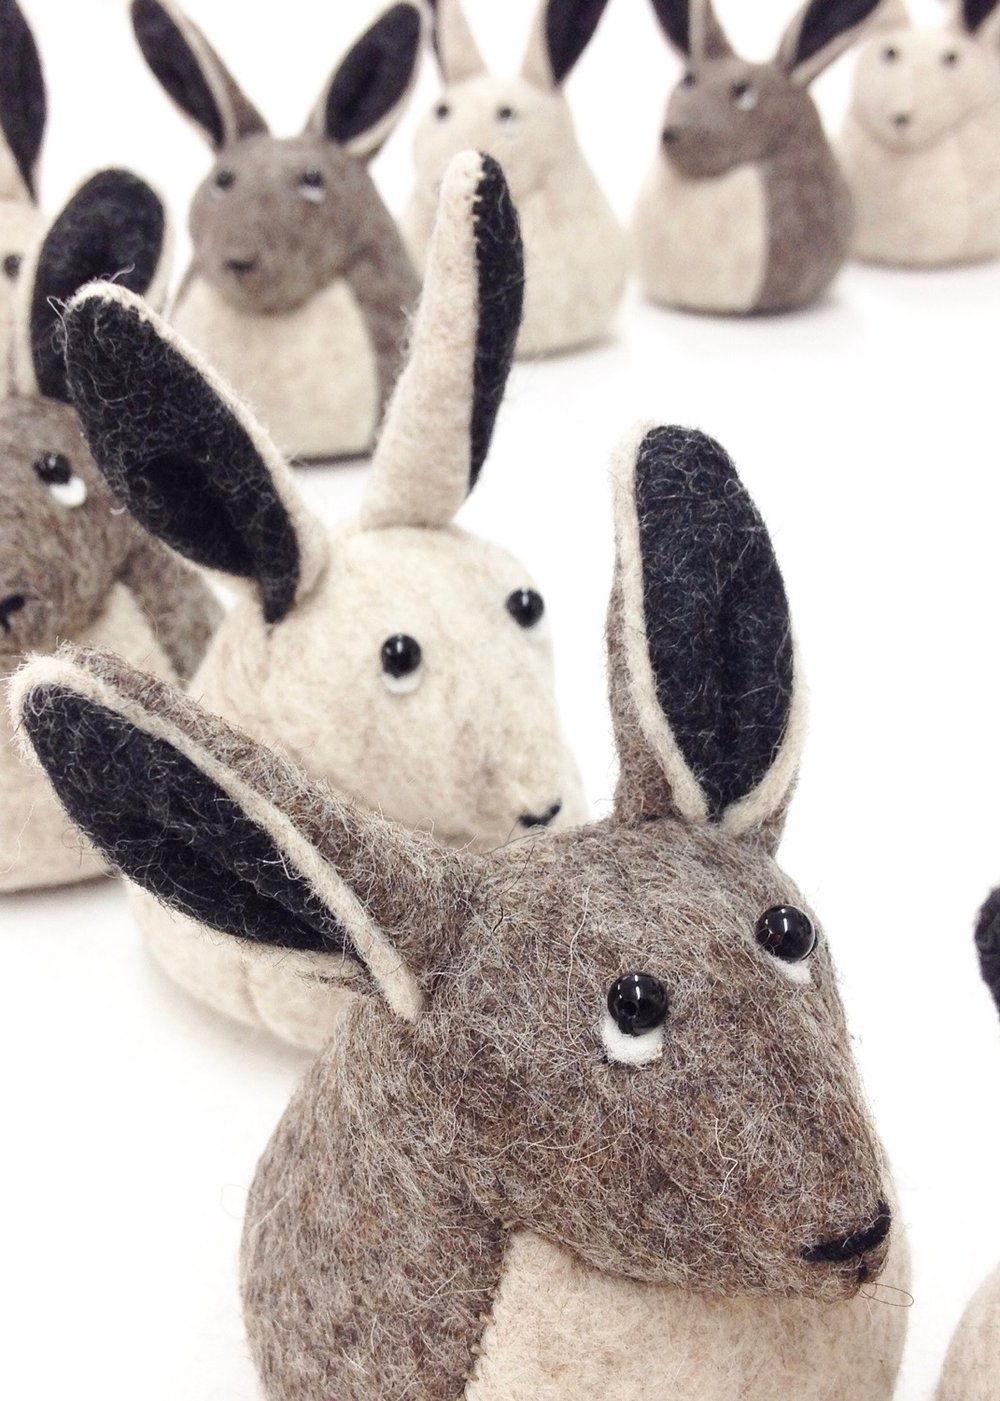 Bilberry Woods storybook characters as cute felt soft sculpture figurines that could be used as paperweights by Laura Mirjami | Mirjami Design